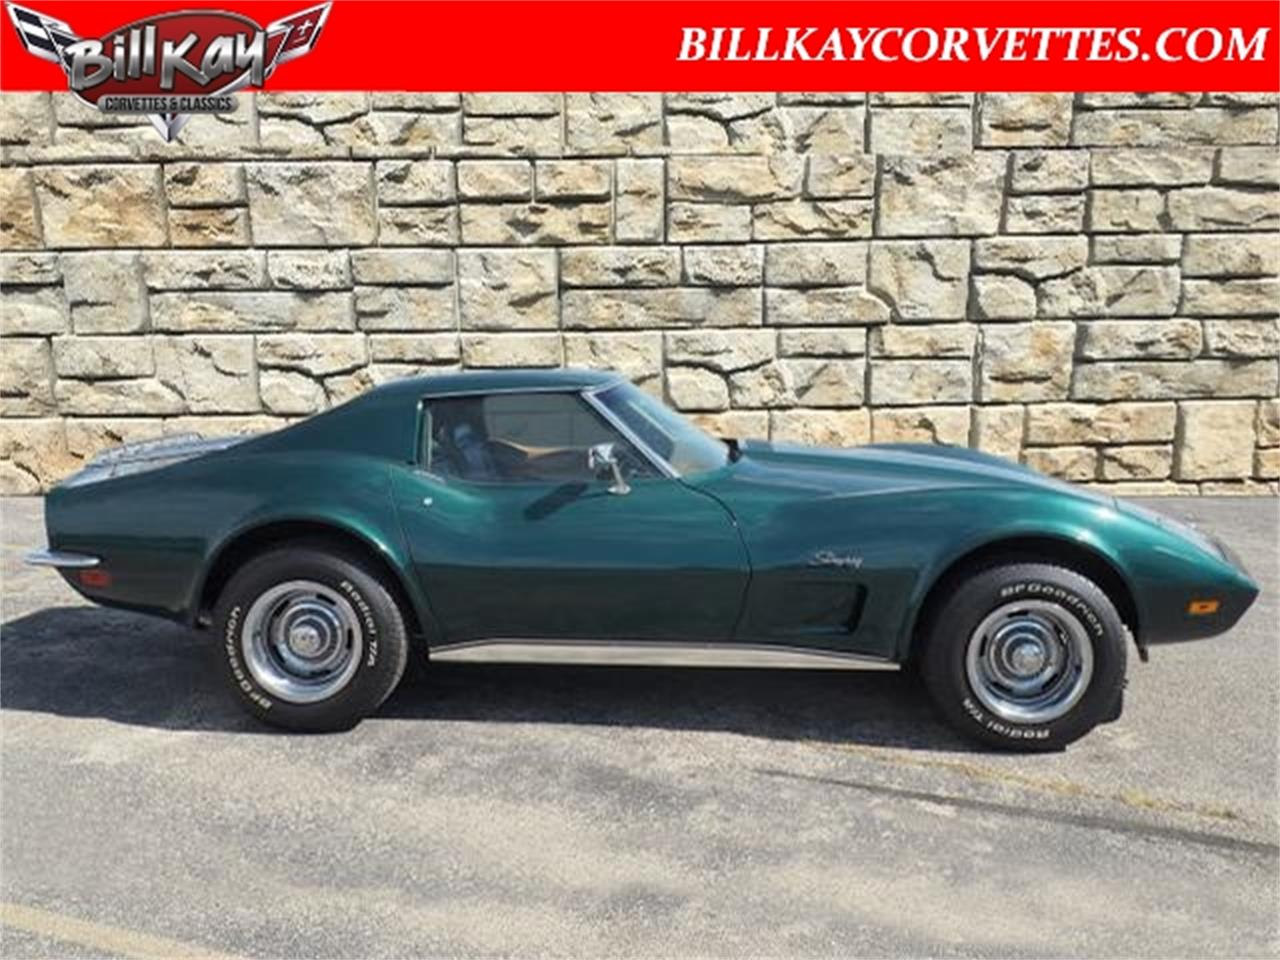 Large Picture of Classic 1973 Corvette located in Illinois - $24,392.00 Offered by Bill Kay Corvettes and Classics - OXQM